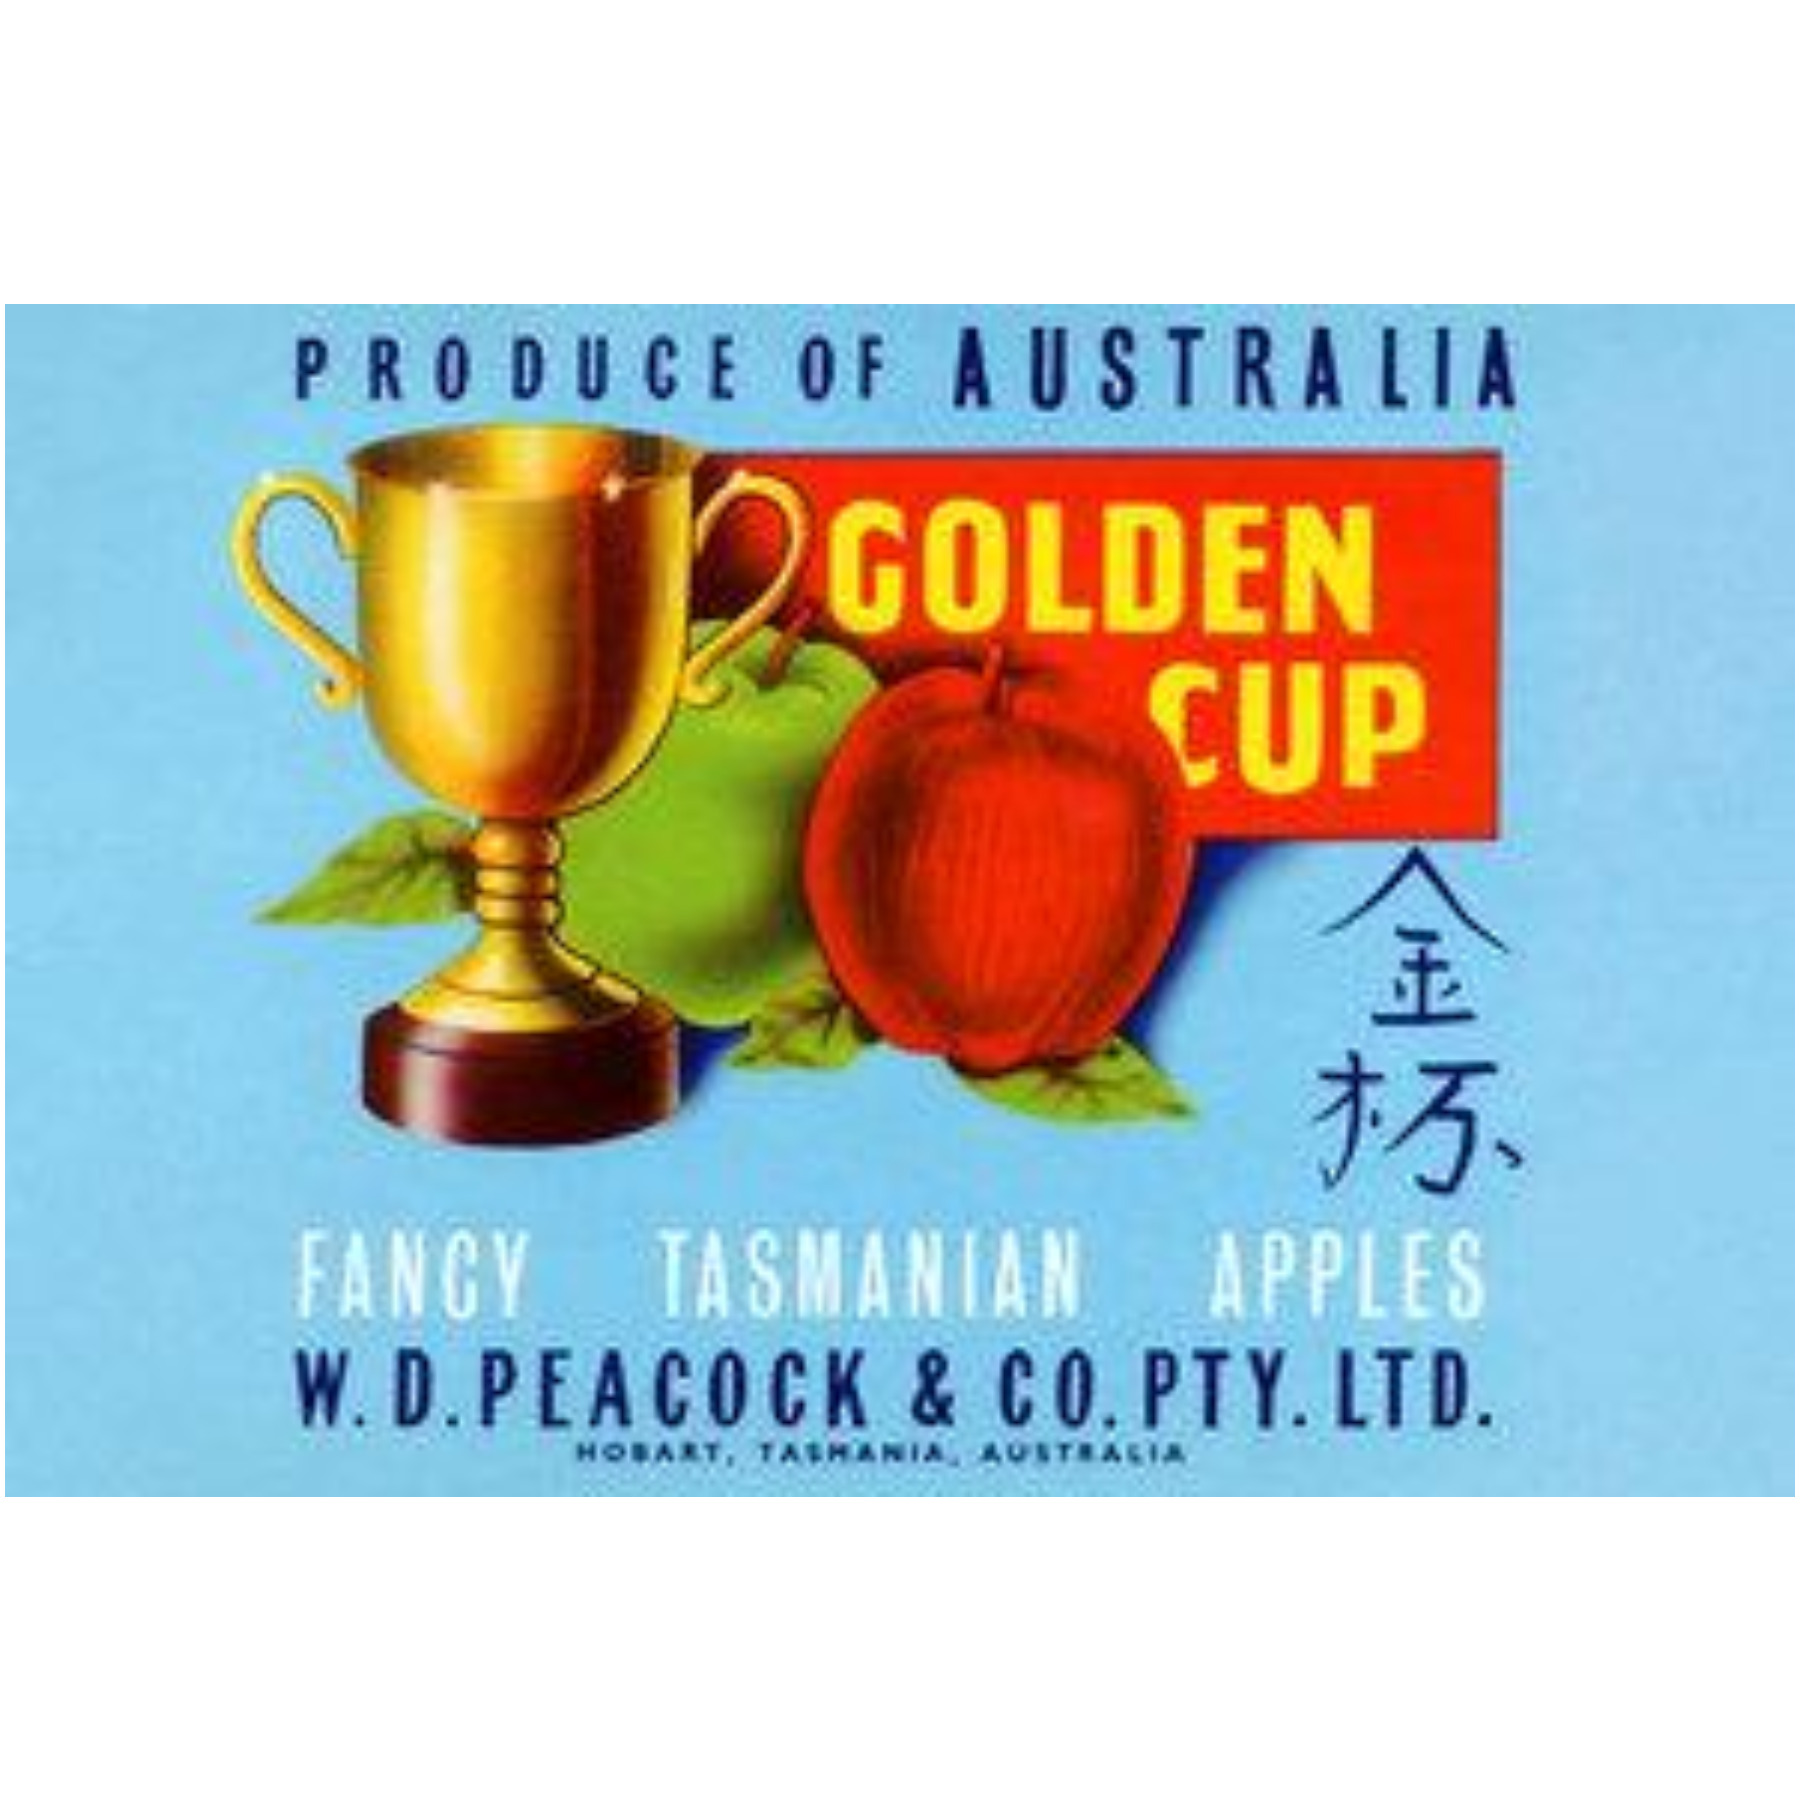 Golden Cup Paper Poster Printed On 12 X 18 Stock. 22619-6 22619-6